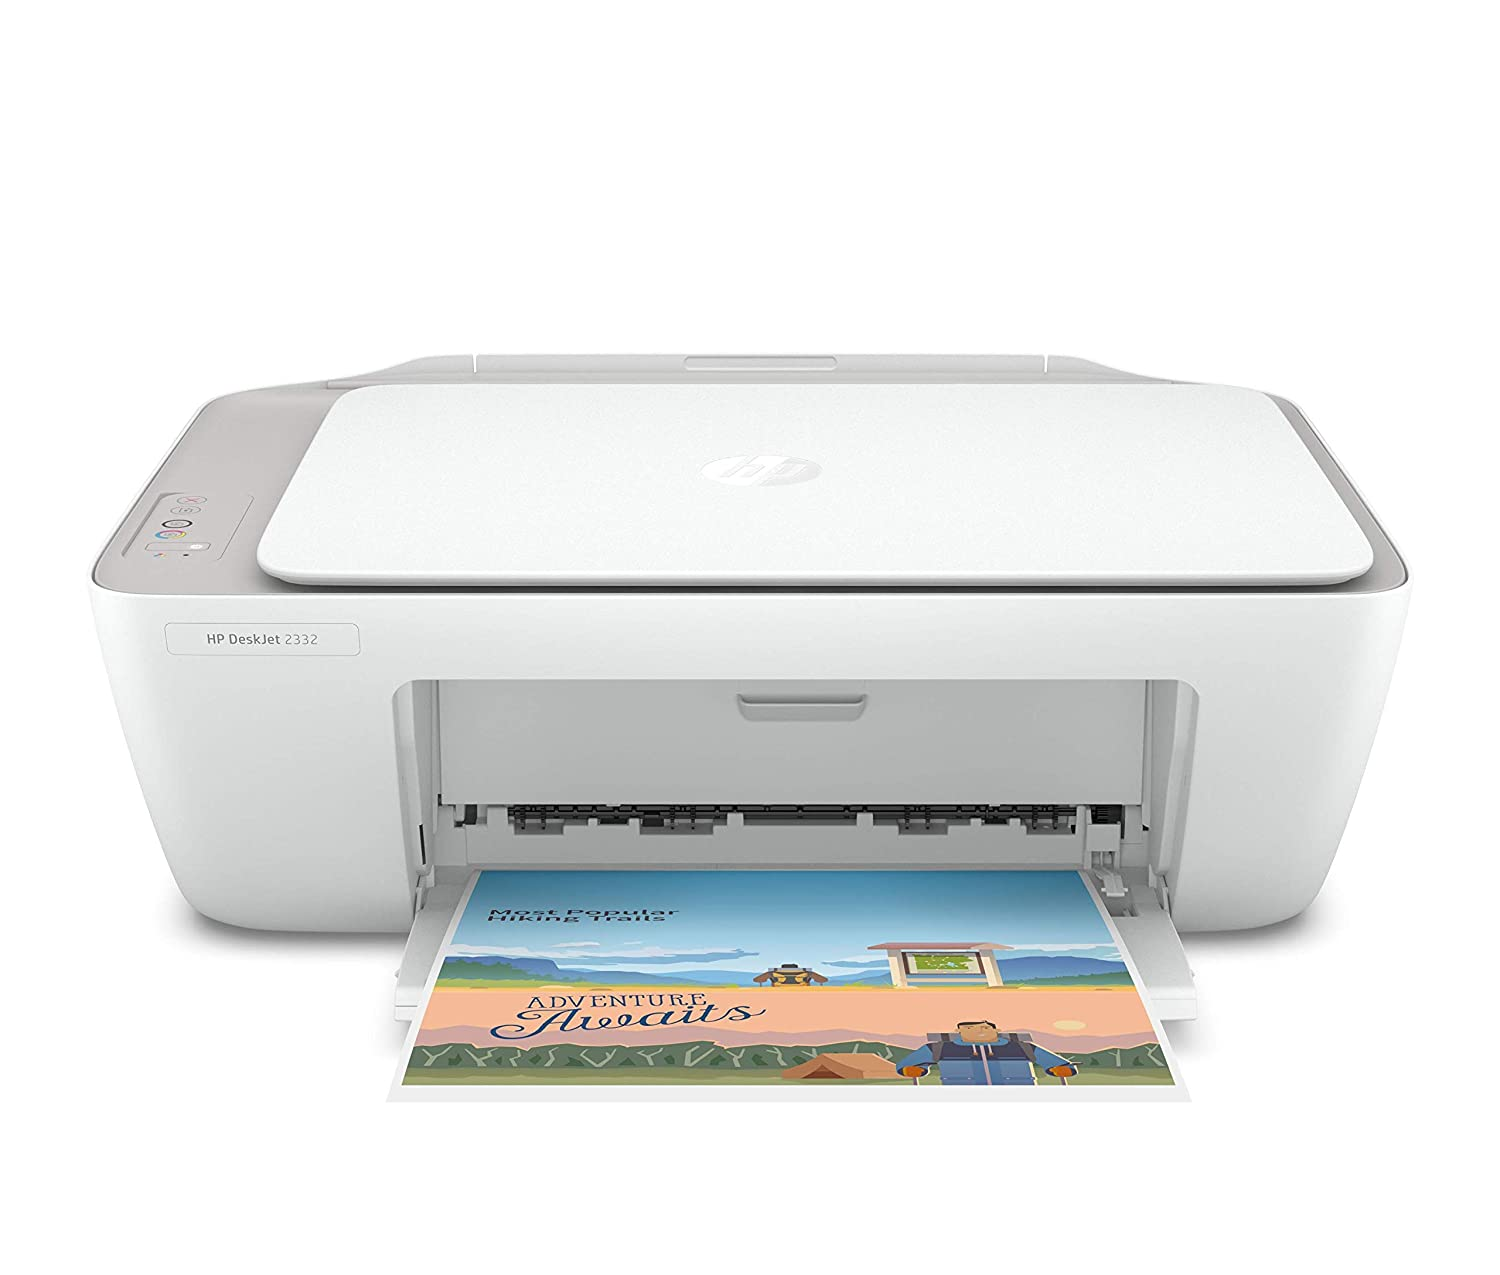 Best Printer for home use in India under 5000